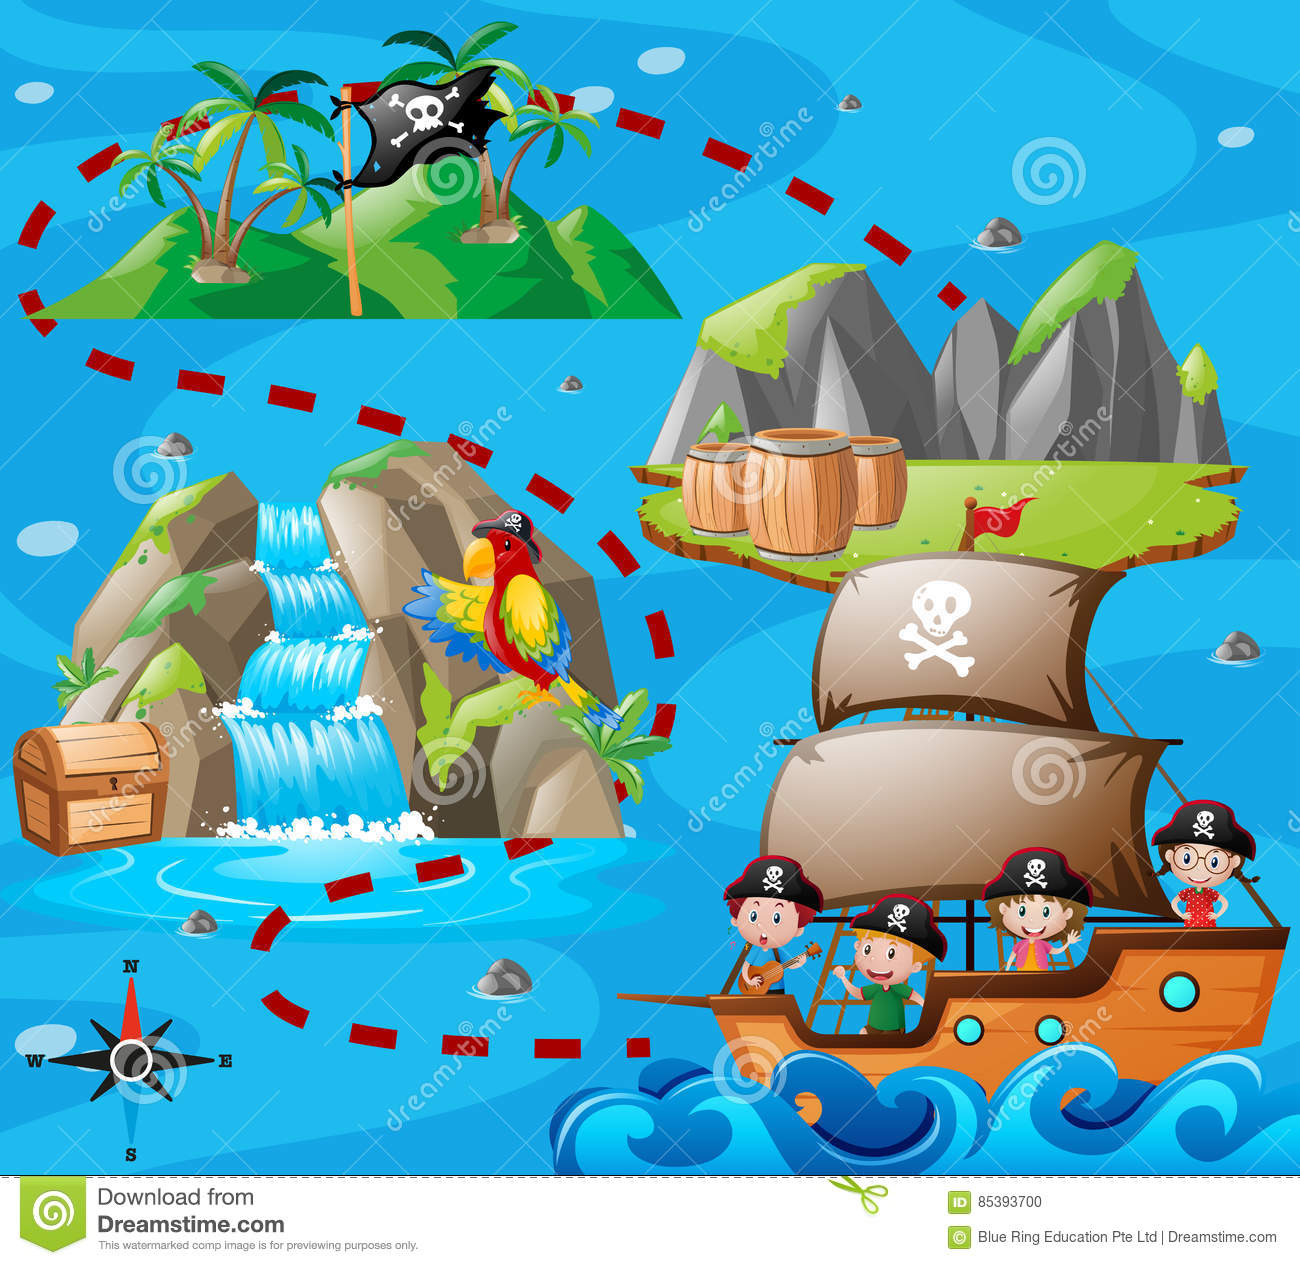 Kids On Ship And Adventure Map Stock Vector - Illustration of adventure, pupil: 85393700